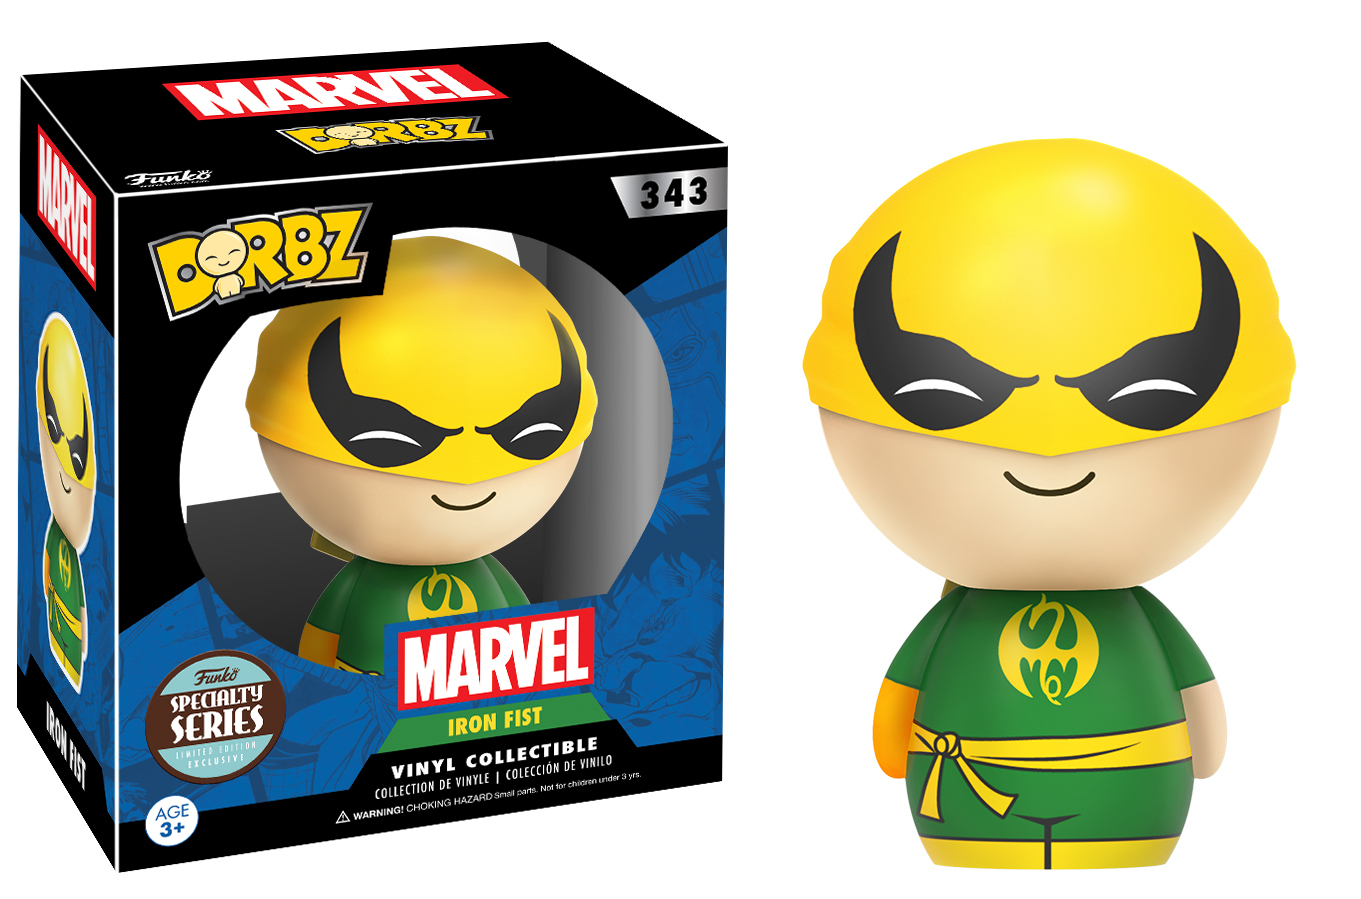 Marvel: Iron Fist Dorbz Vinyl Figure image